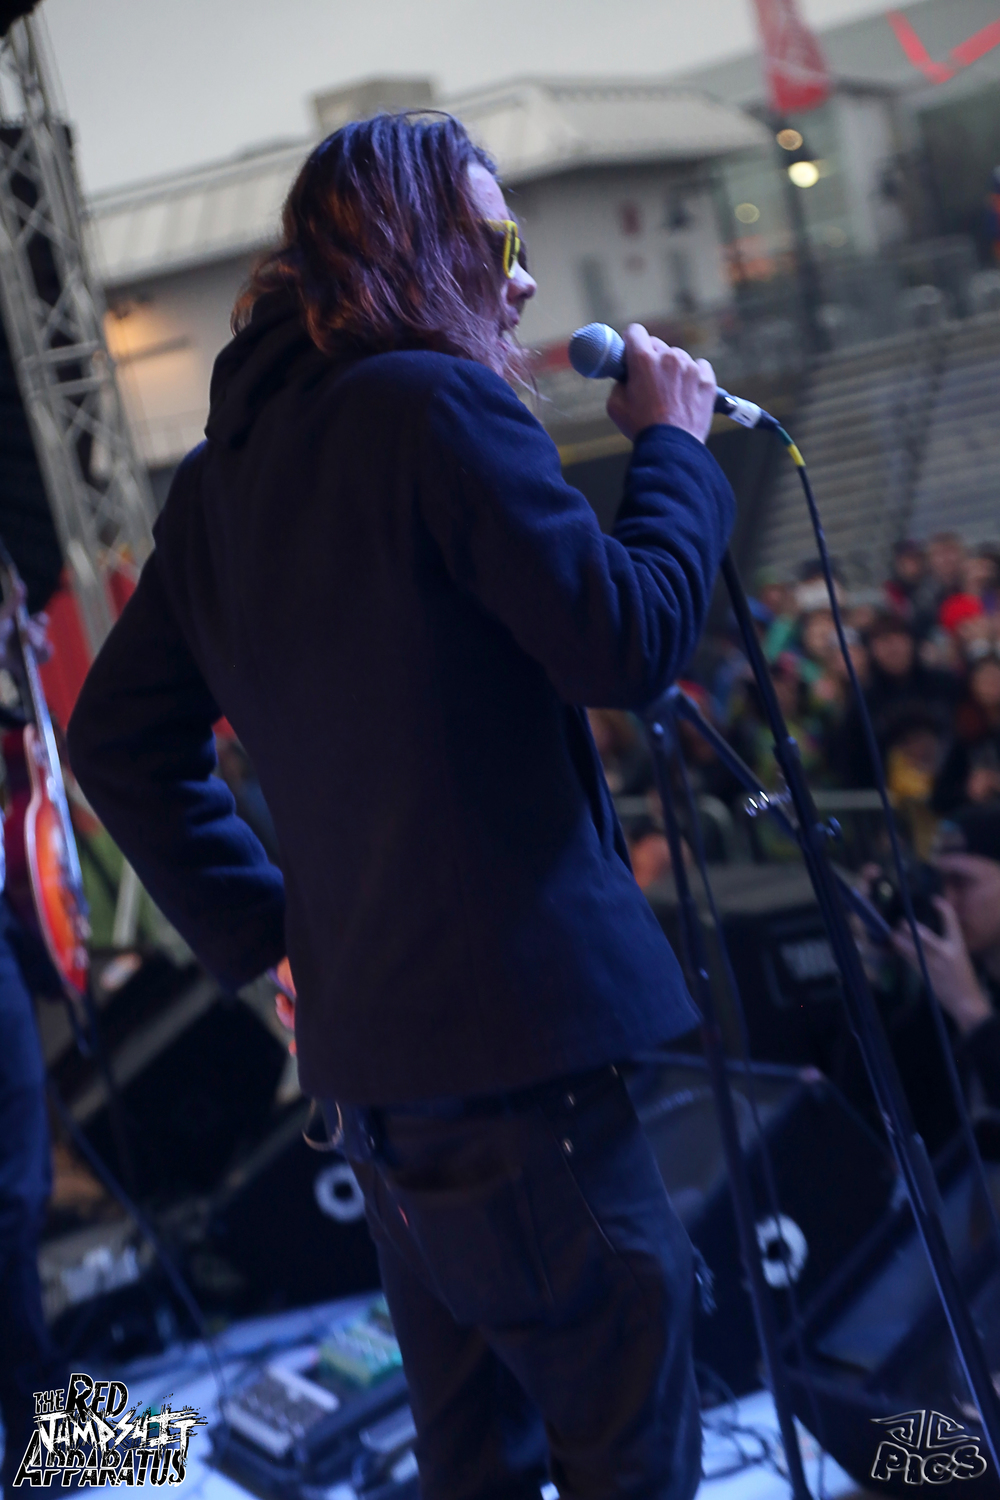 Red Jumpsuit Apparatus 9B4A8624.JPG